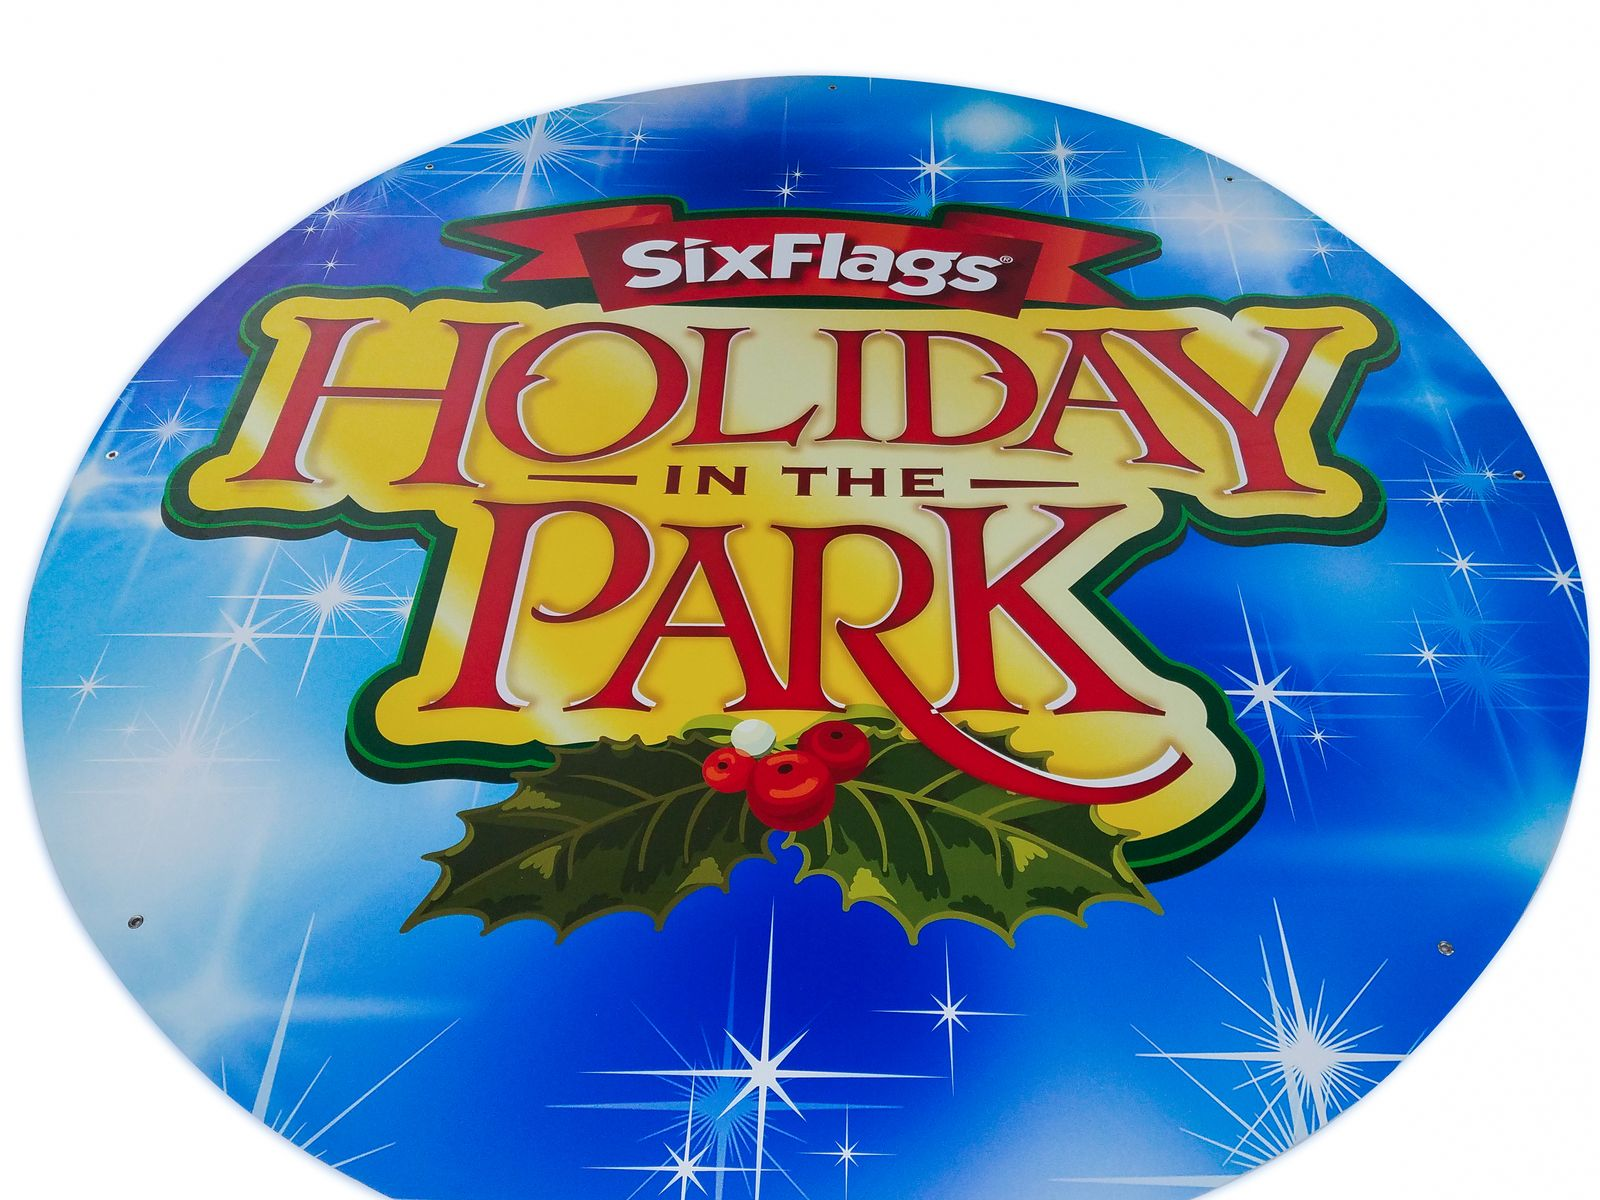 Six Flags light box sign with winter themed graphics made of lexan for theme park entrance holiday promotion